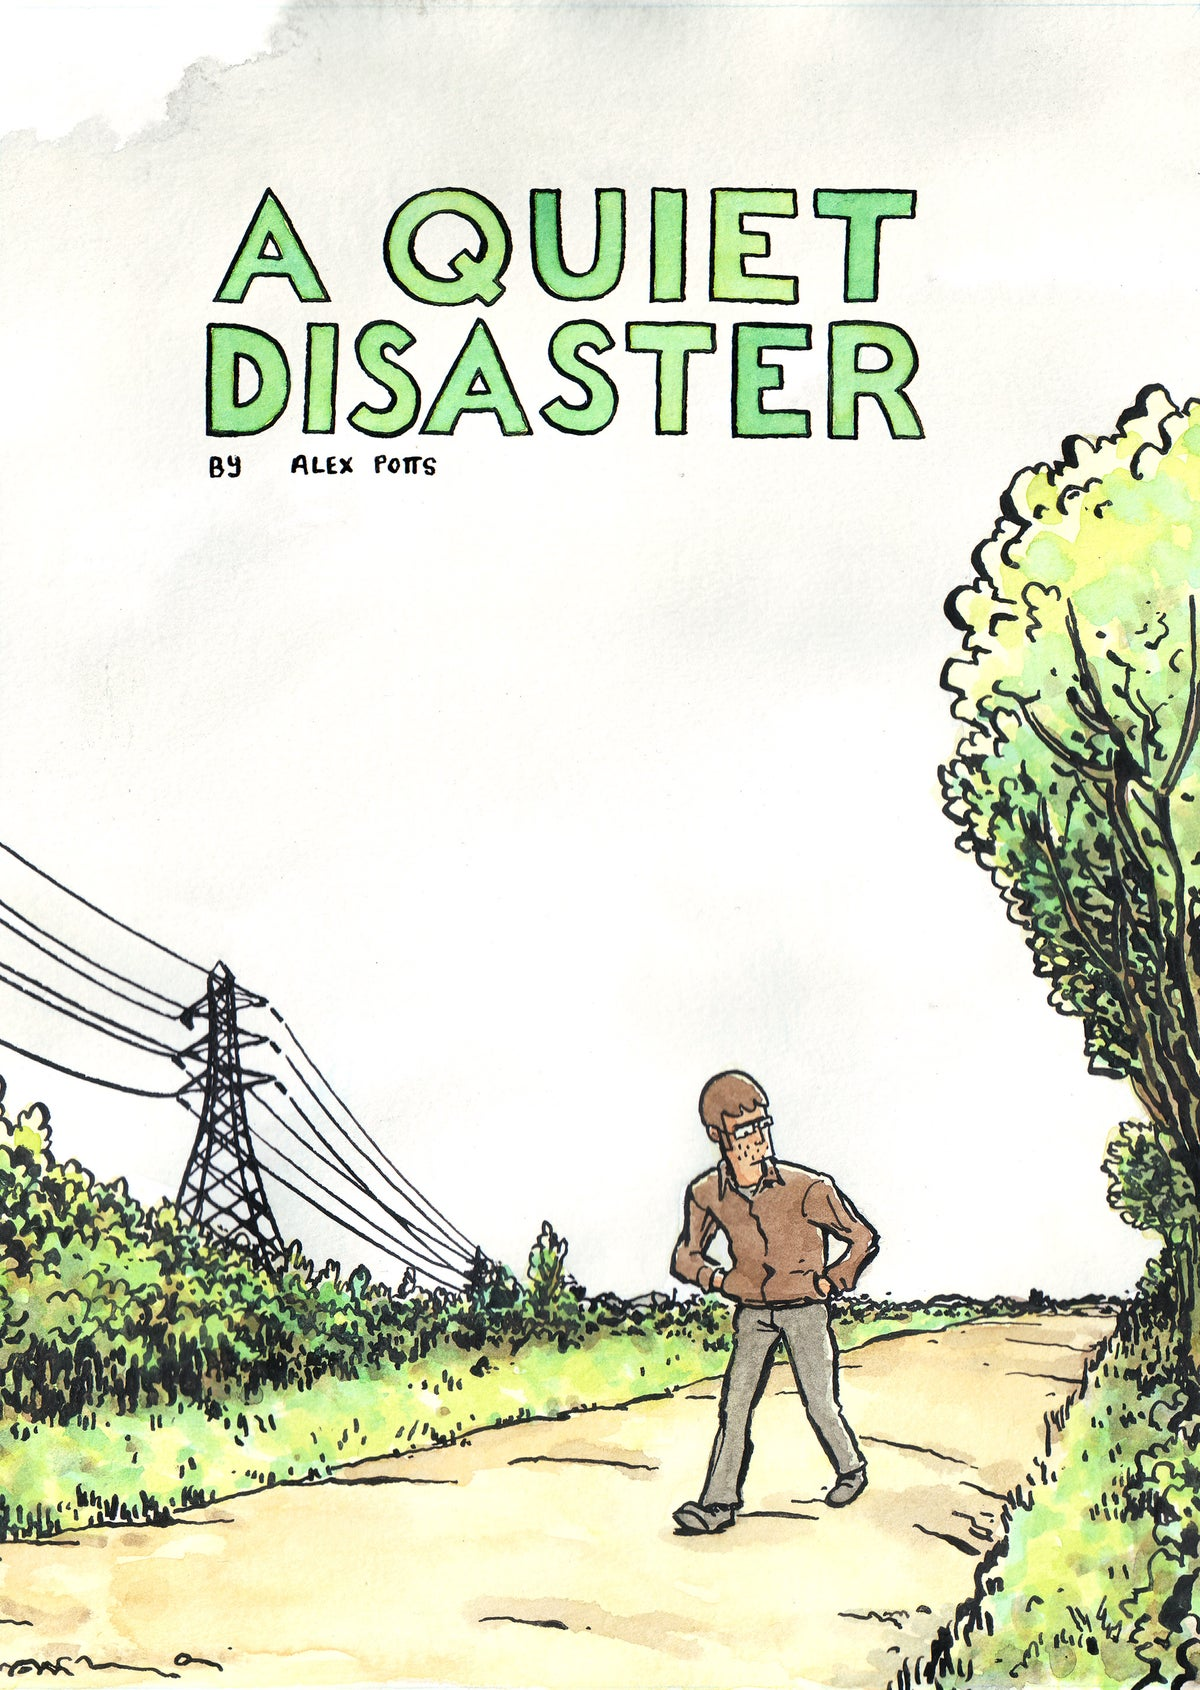 A Quiet Disaster by Alex Potts